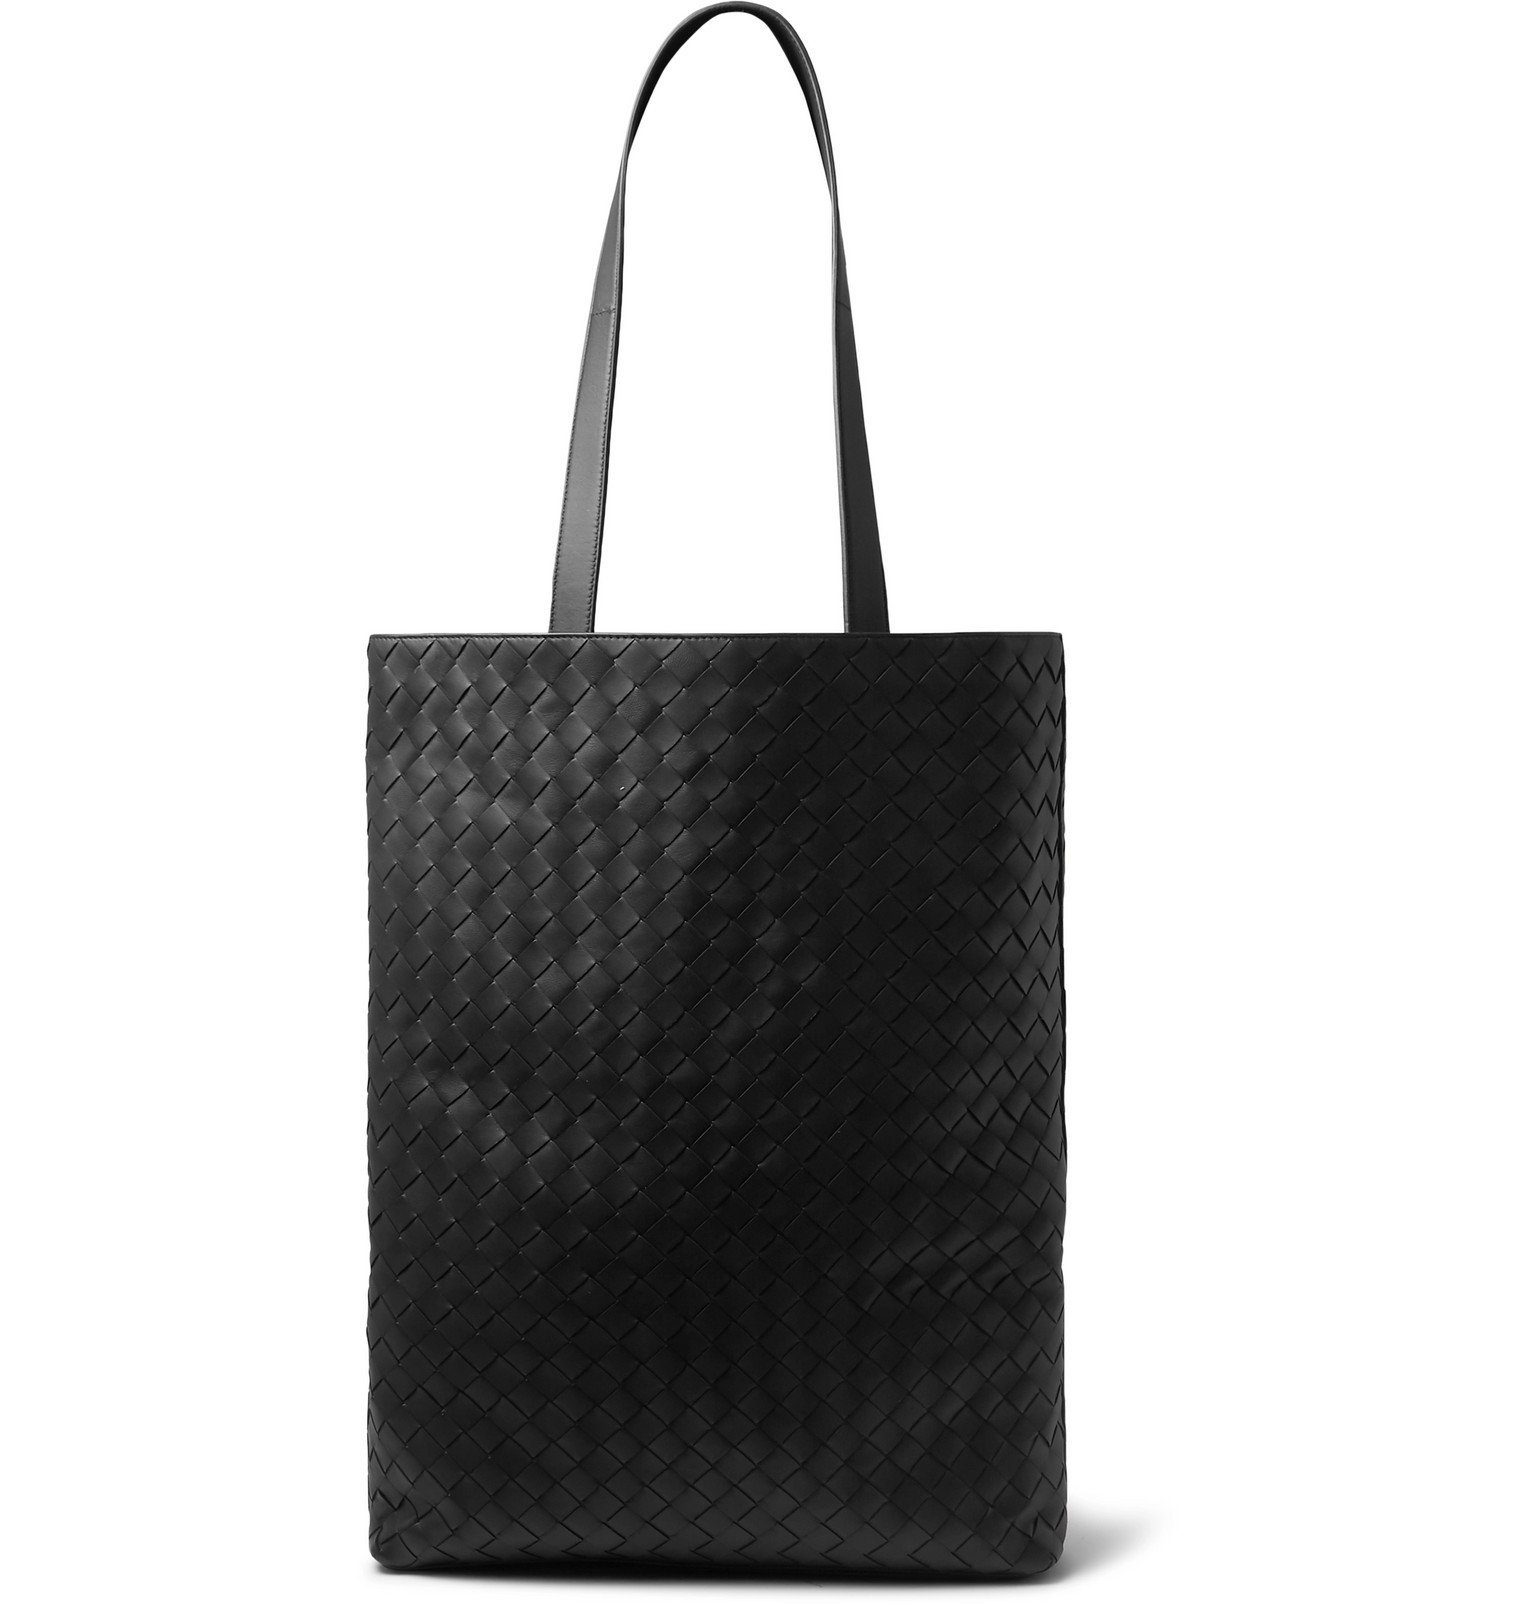 Photo: Bottega Veneta - Large Intrecciato Leather Tote Bag - Black